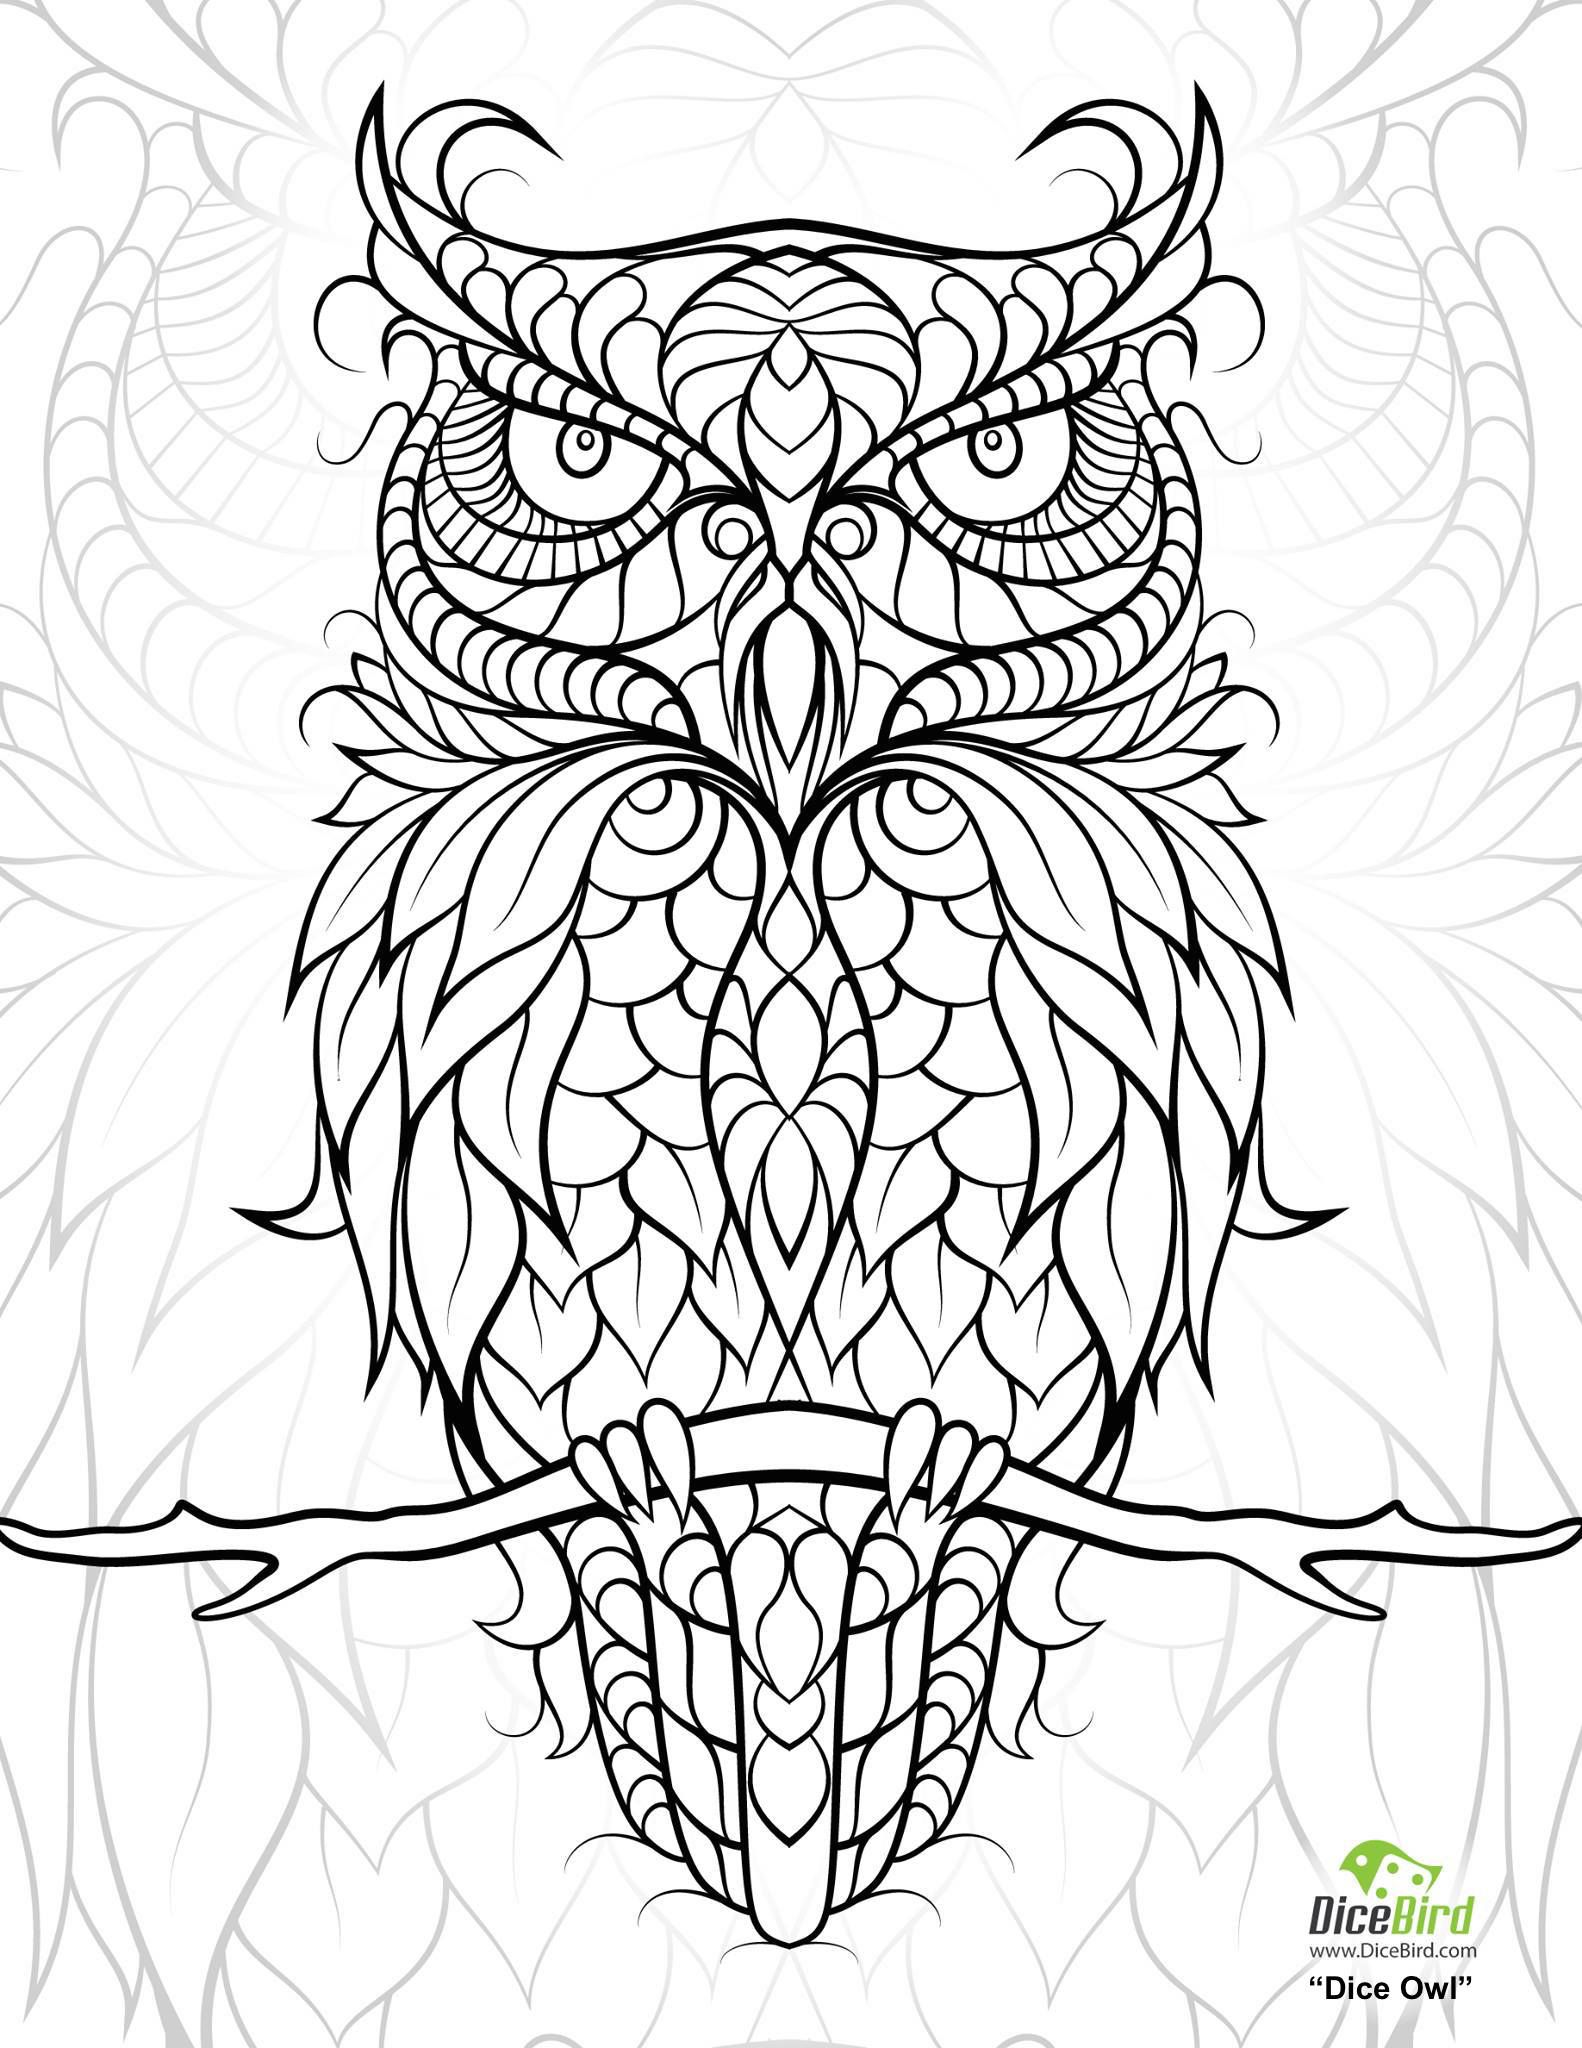 Pages to color for adults - Diceowl Free Printable Adult Coloring Pages